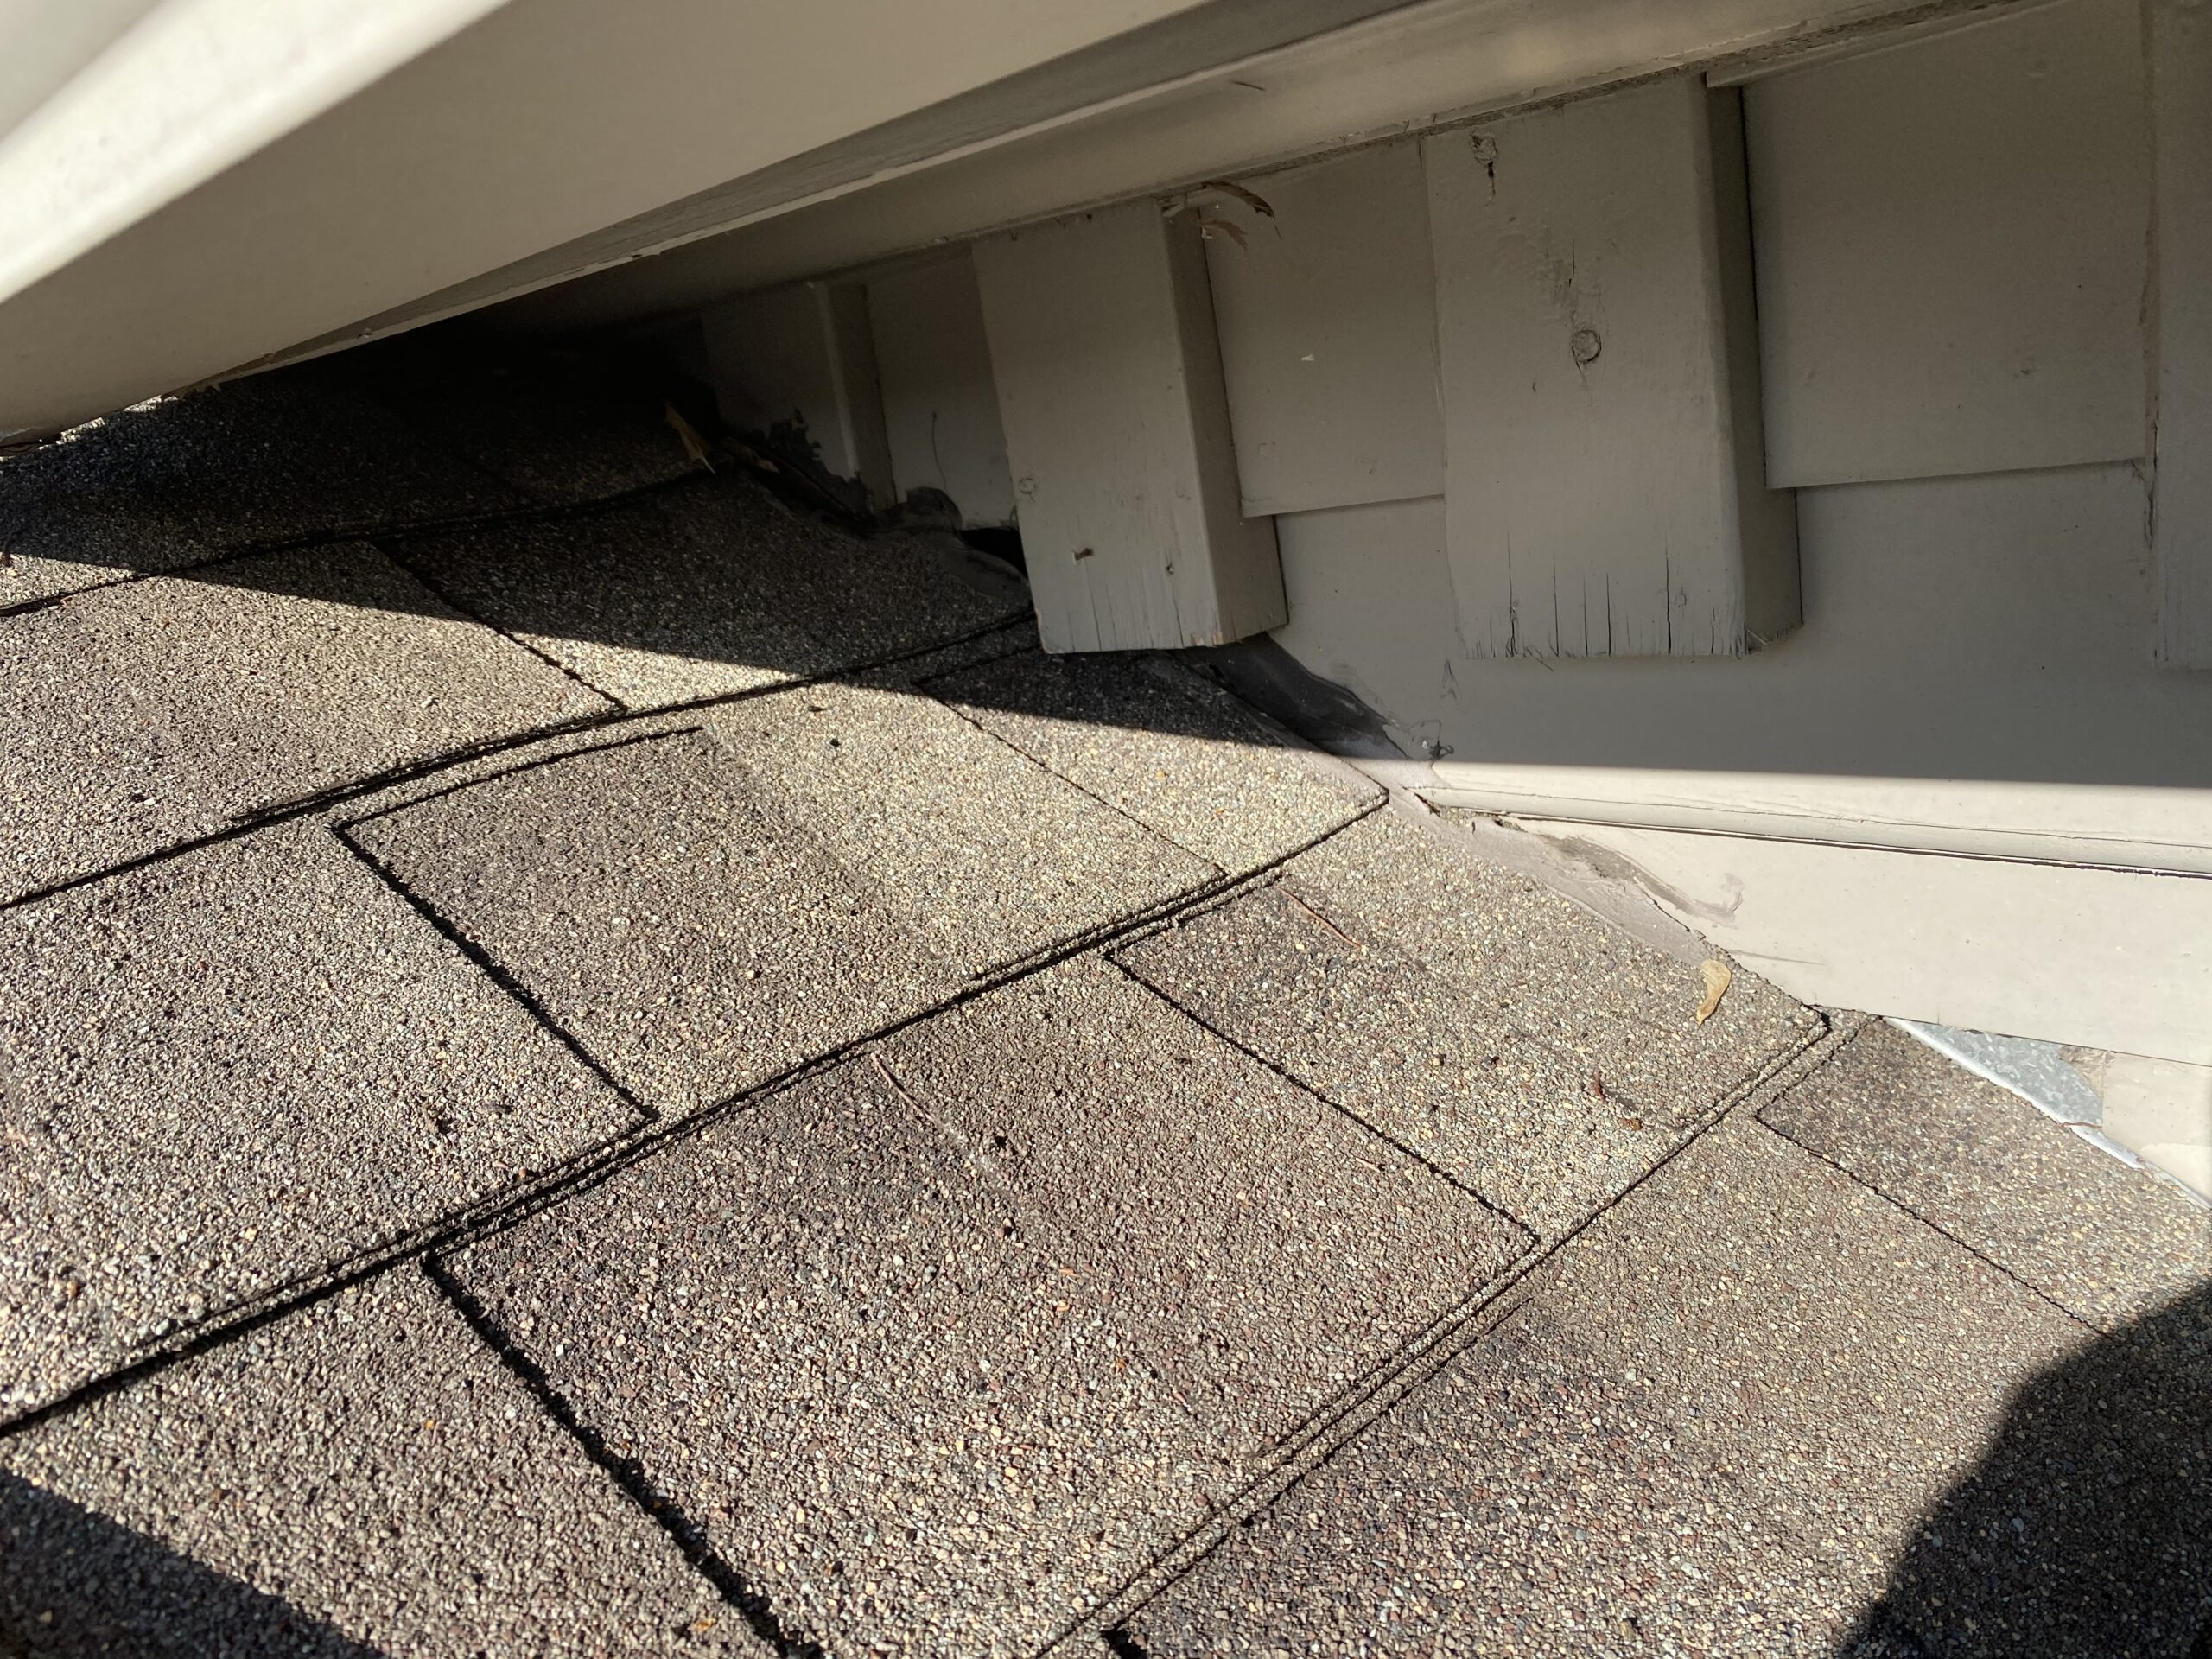 This is a picture of brown shingles below a wicker colored gutter